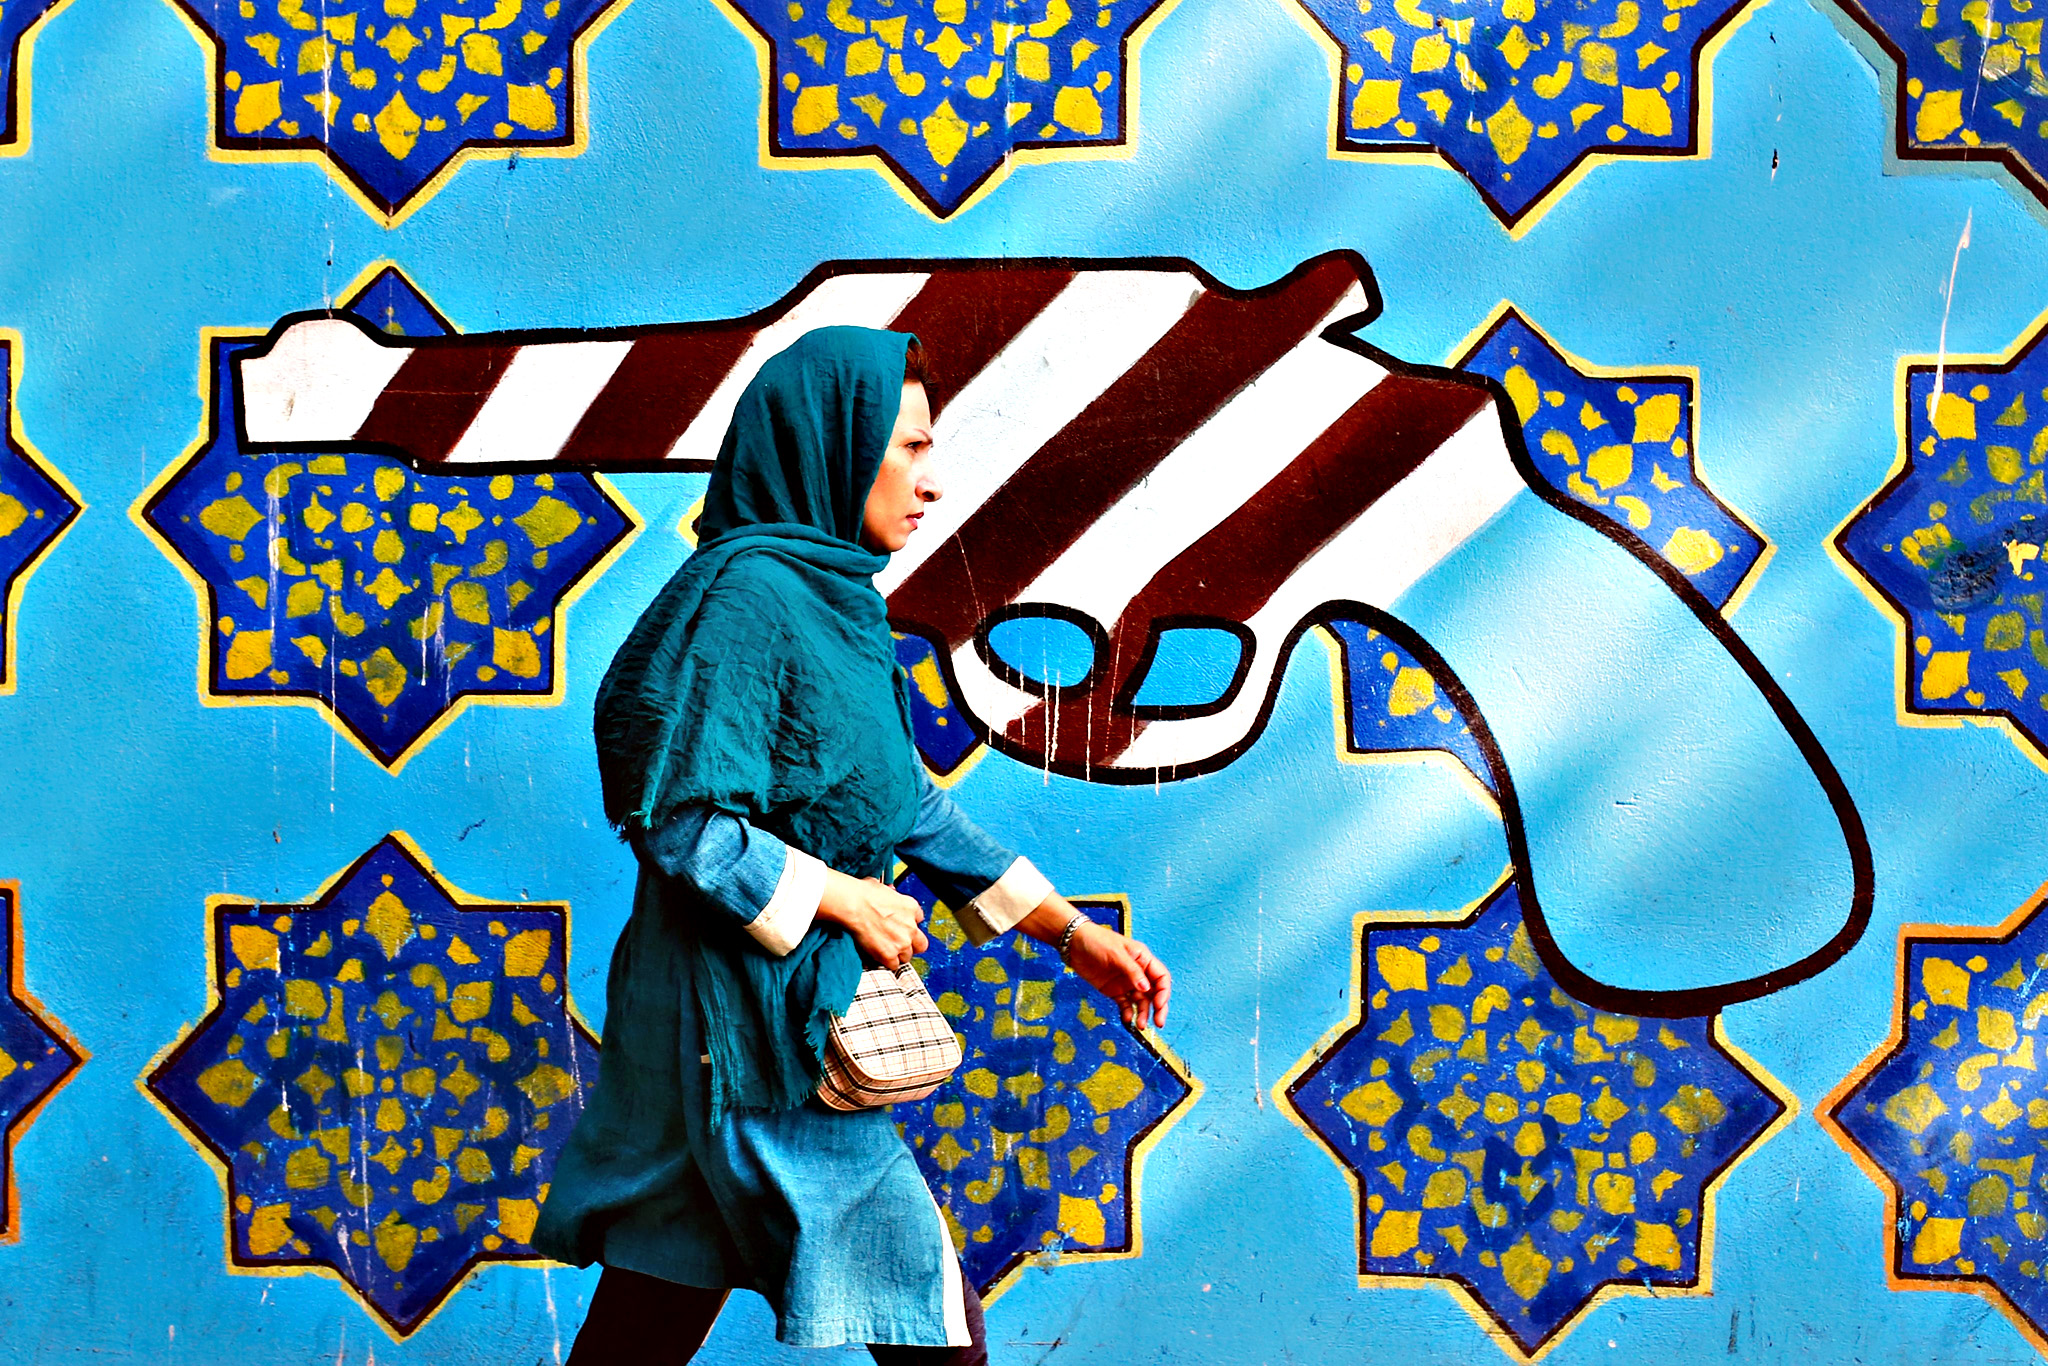 An Iranian woman walks past a painting of a revolver, painted in an American-flag style, on the wall of former US embassy in Tehran, Iran, on Wednesday. According to reports, a panel carrying some 100 anti-US comments by Iranian late supreme leader Ayatollah Ruhollah Khomini was placed on the wall of the former US embassy in Tehran. A group of Iranian students burnt American, British and Israeli flags rejecting restoring relations with the US after reaching the nuclear deal